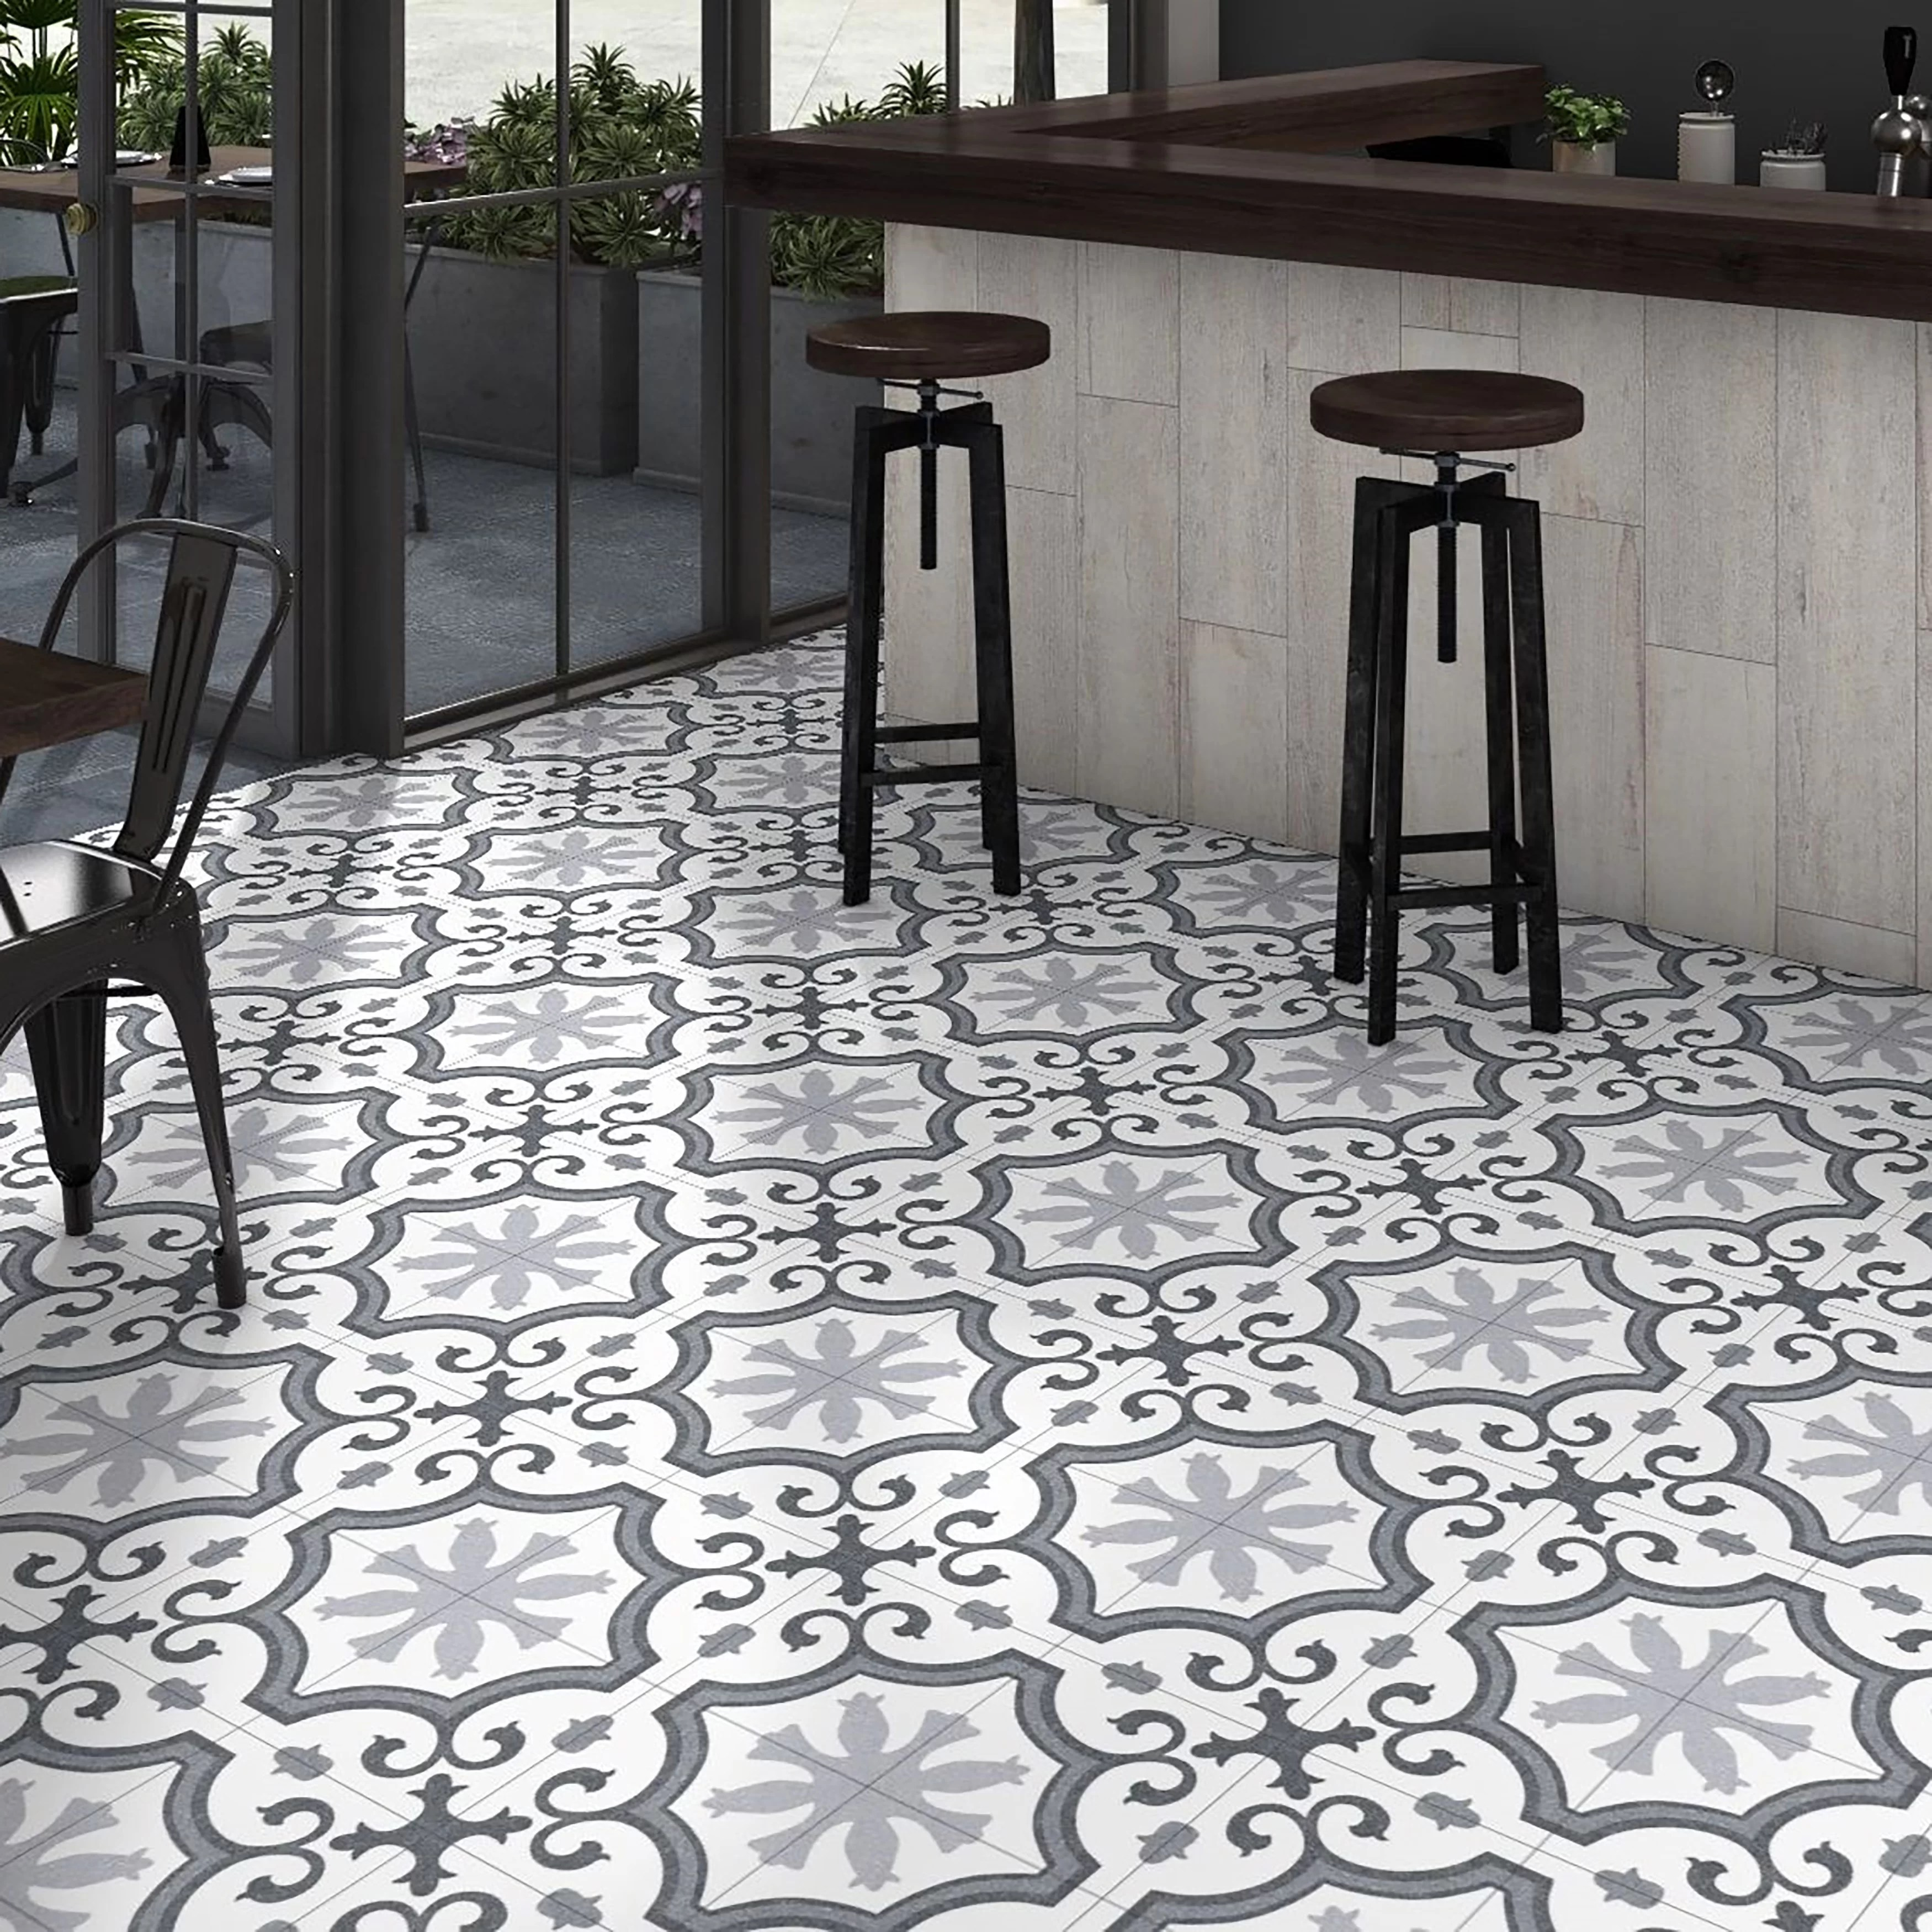 wall tile up to 40 off through 06 01